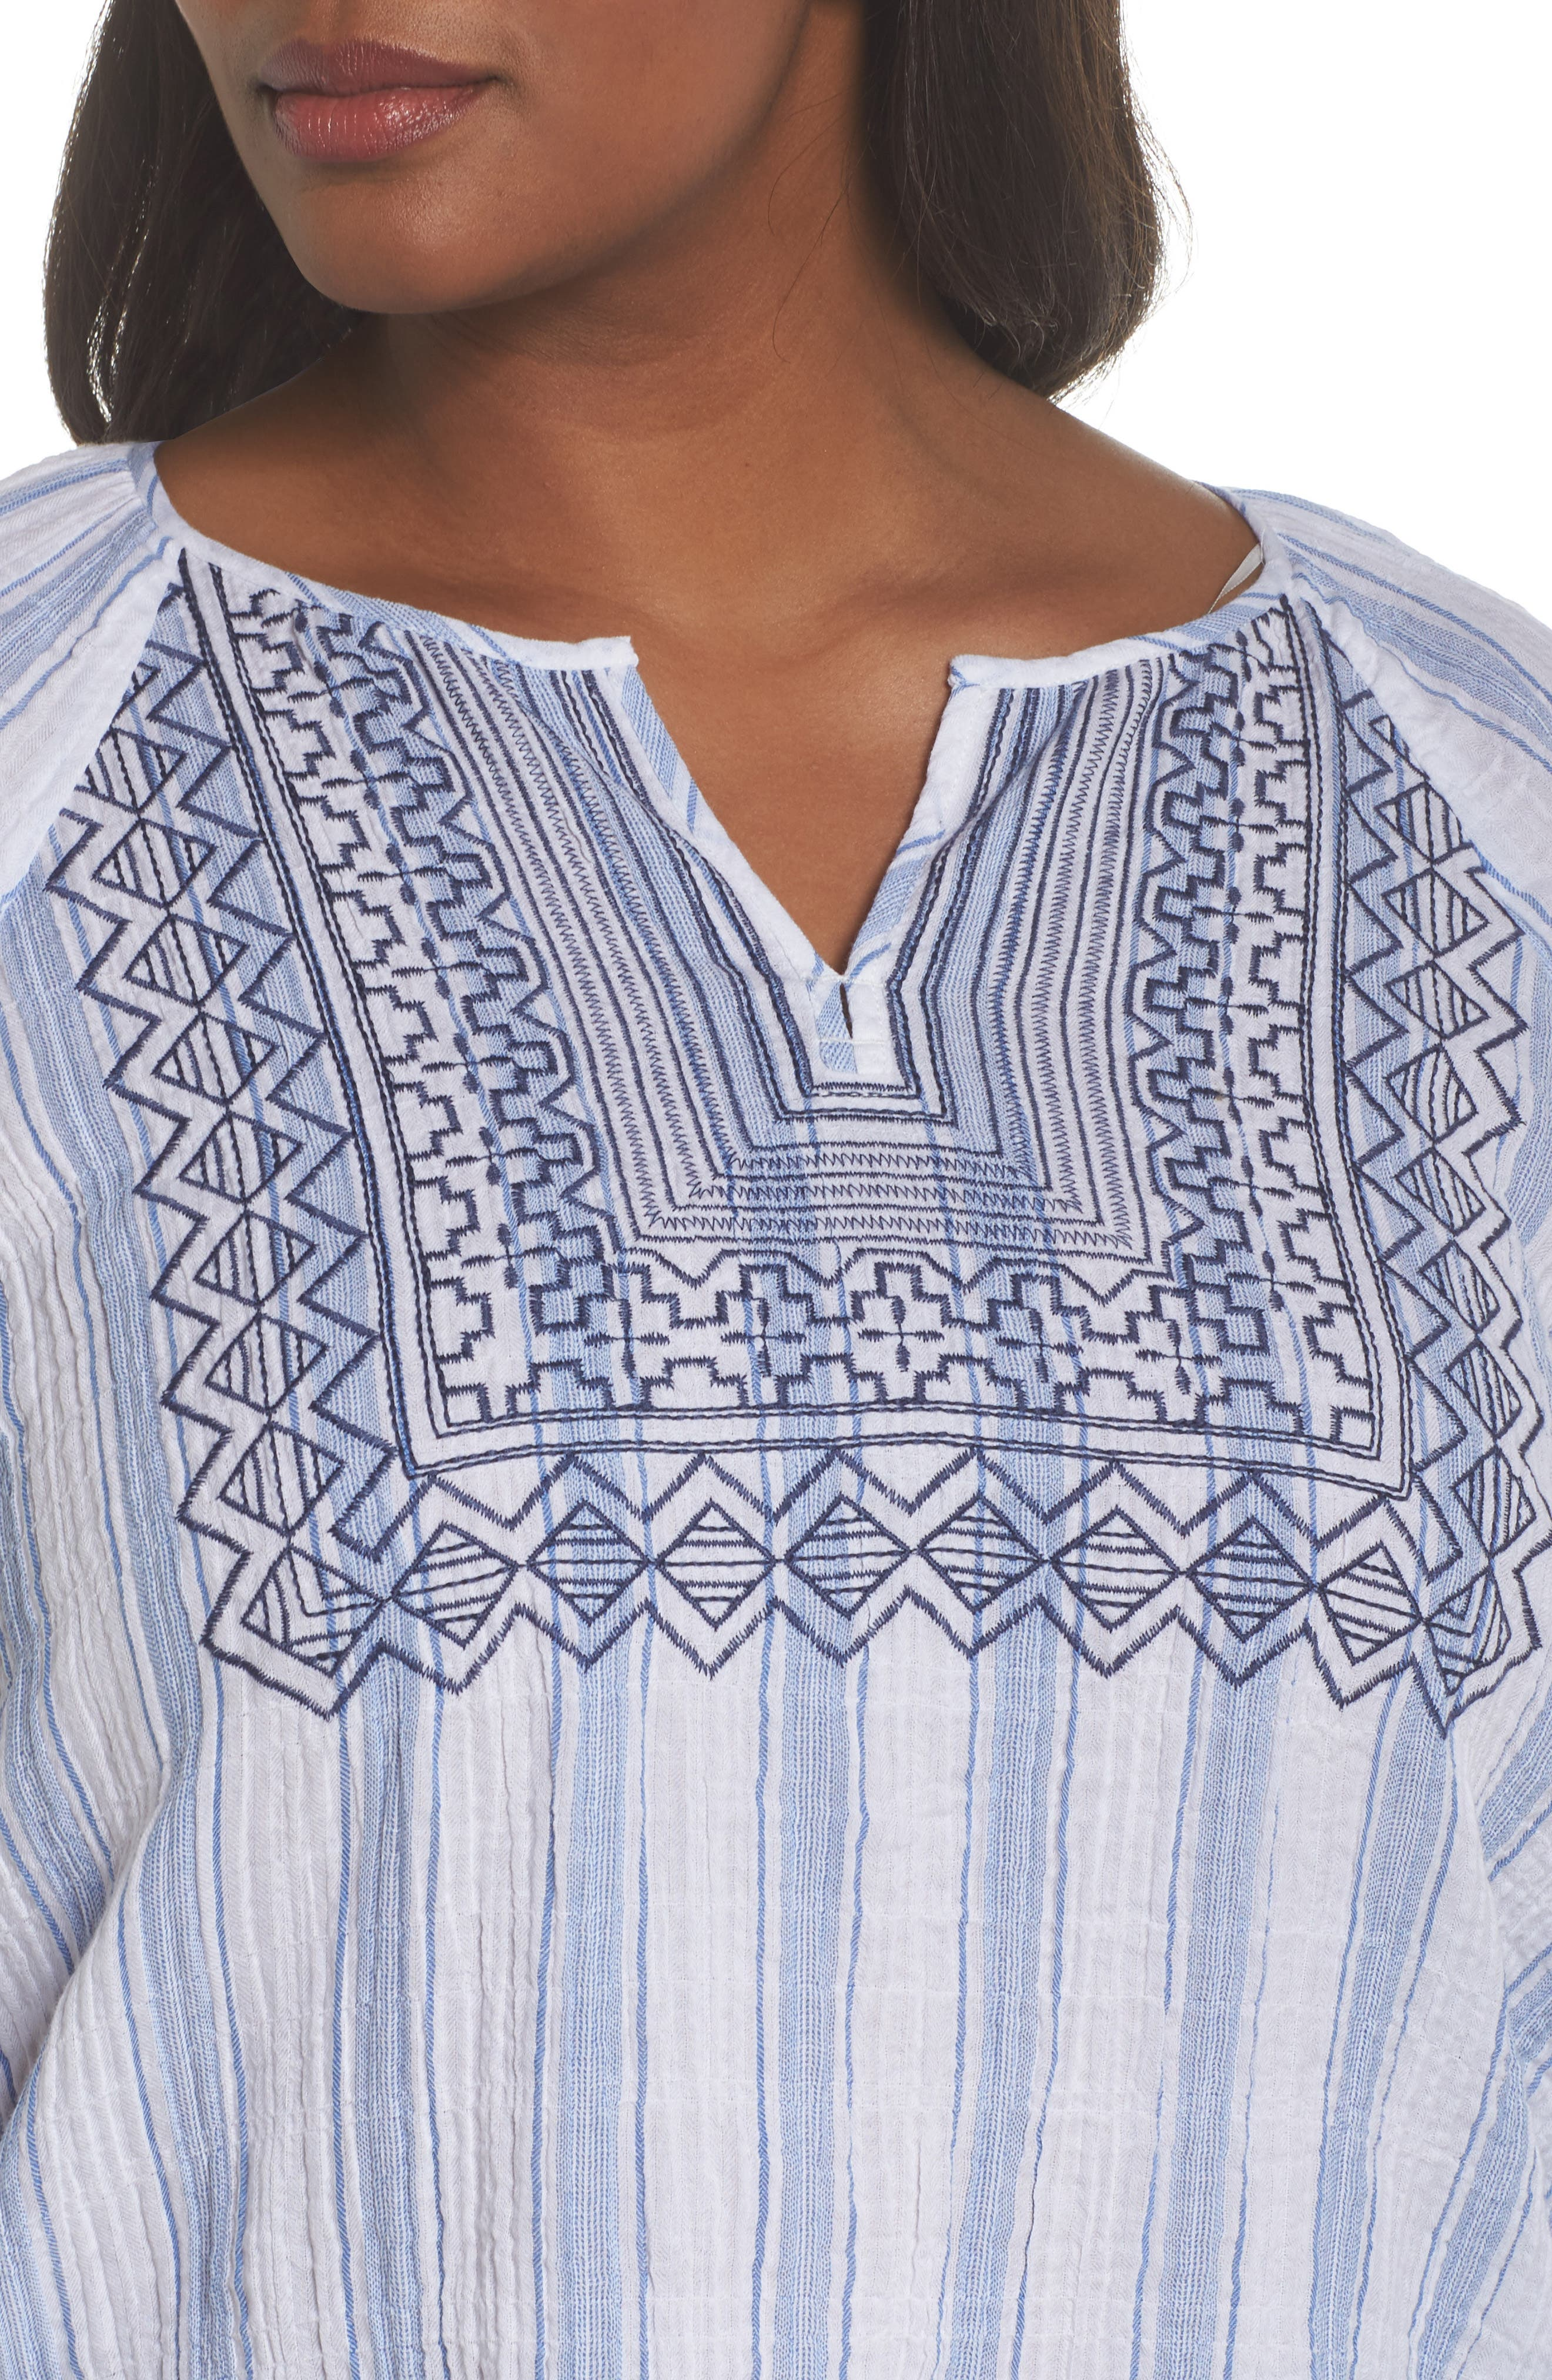 Embroidered Stripe Top,                             Alternate thumbnail 4, color,                             Patina Blue